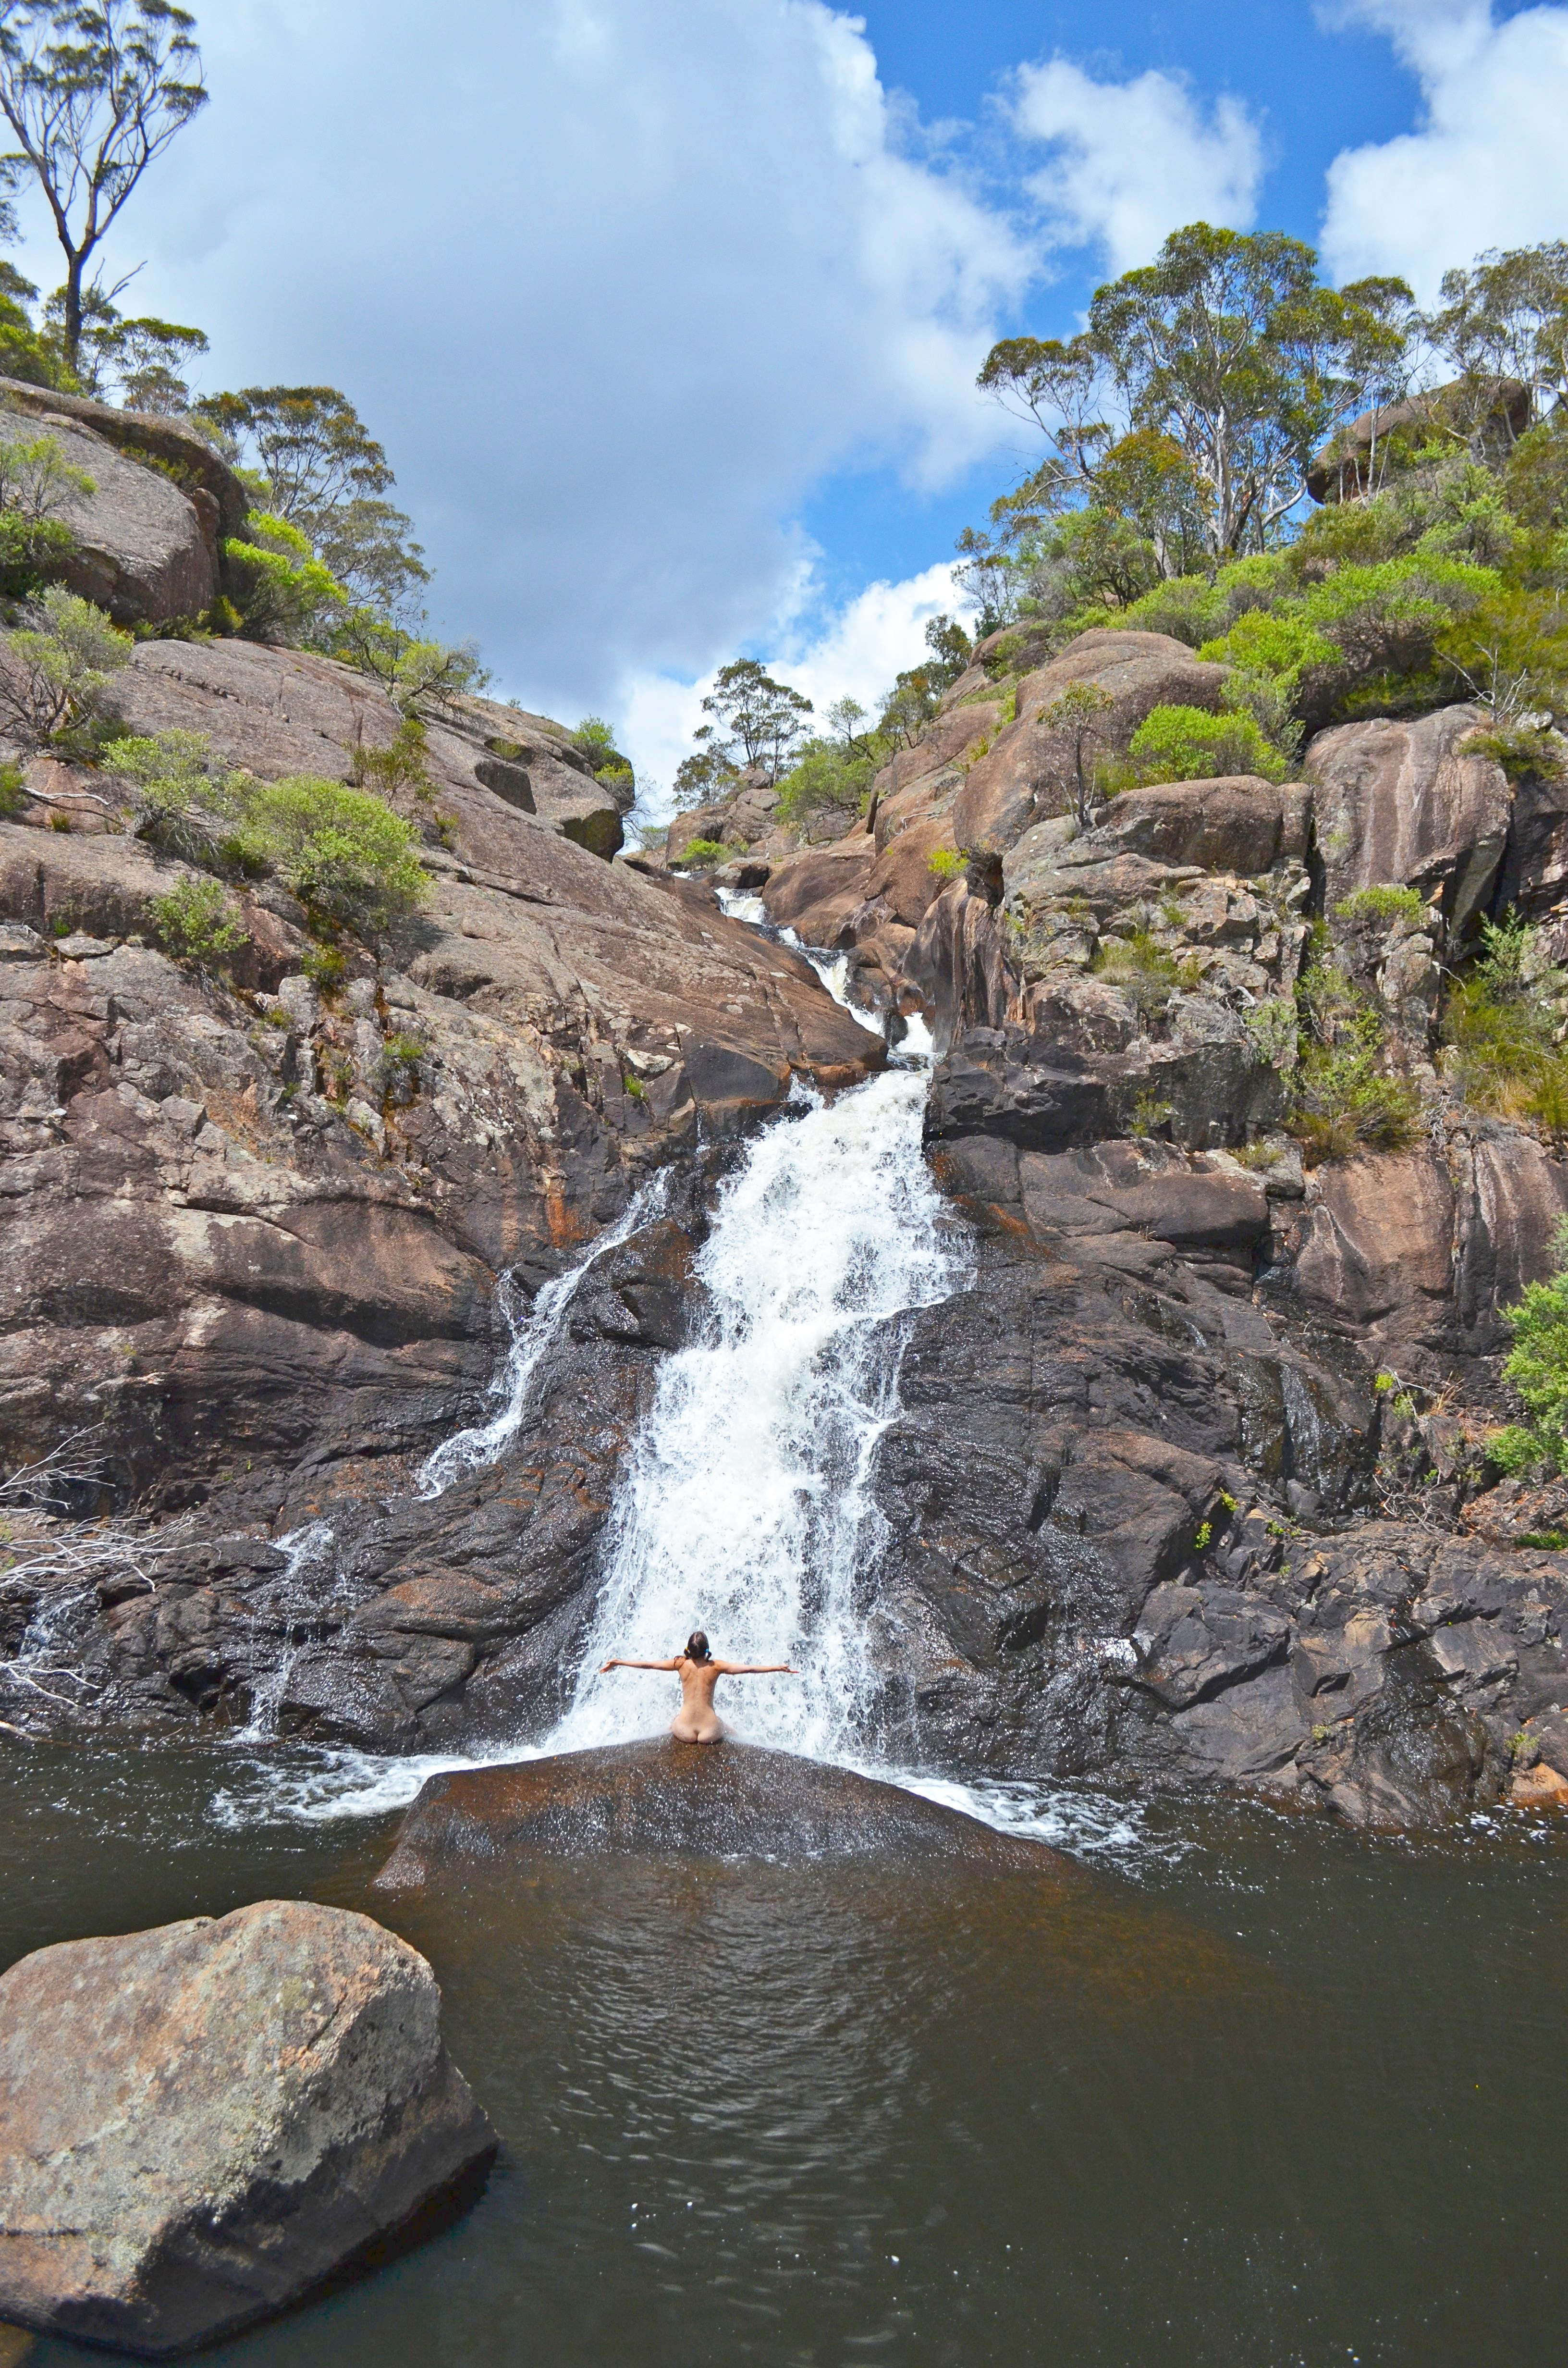 The Ten Most Spectacular Swimming Hole Locations In Sydney